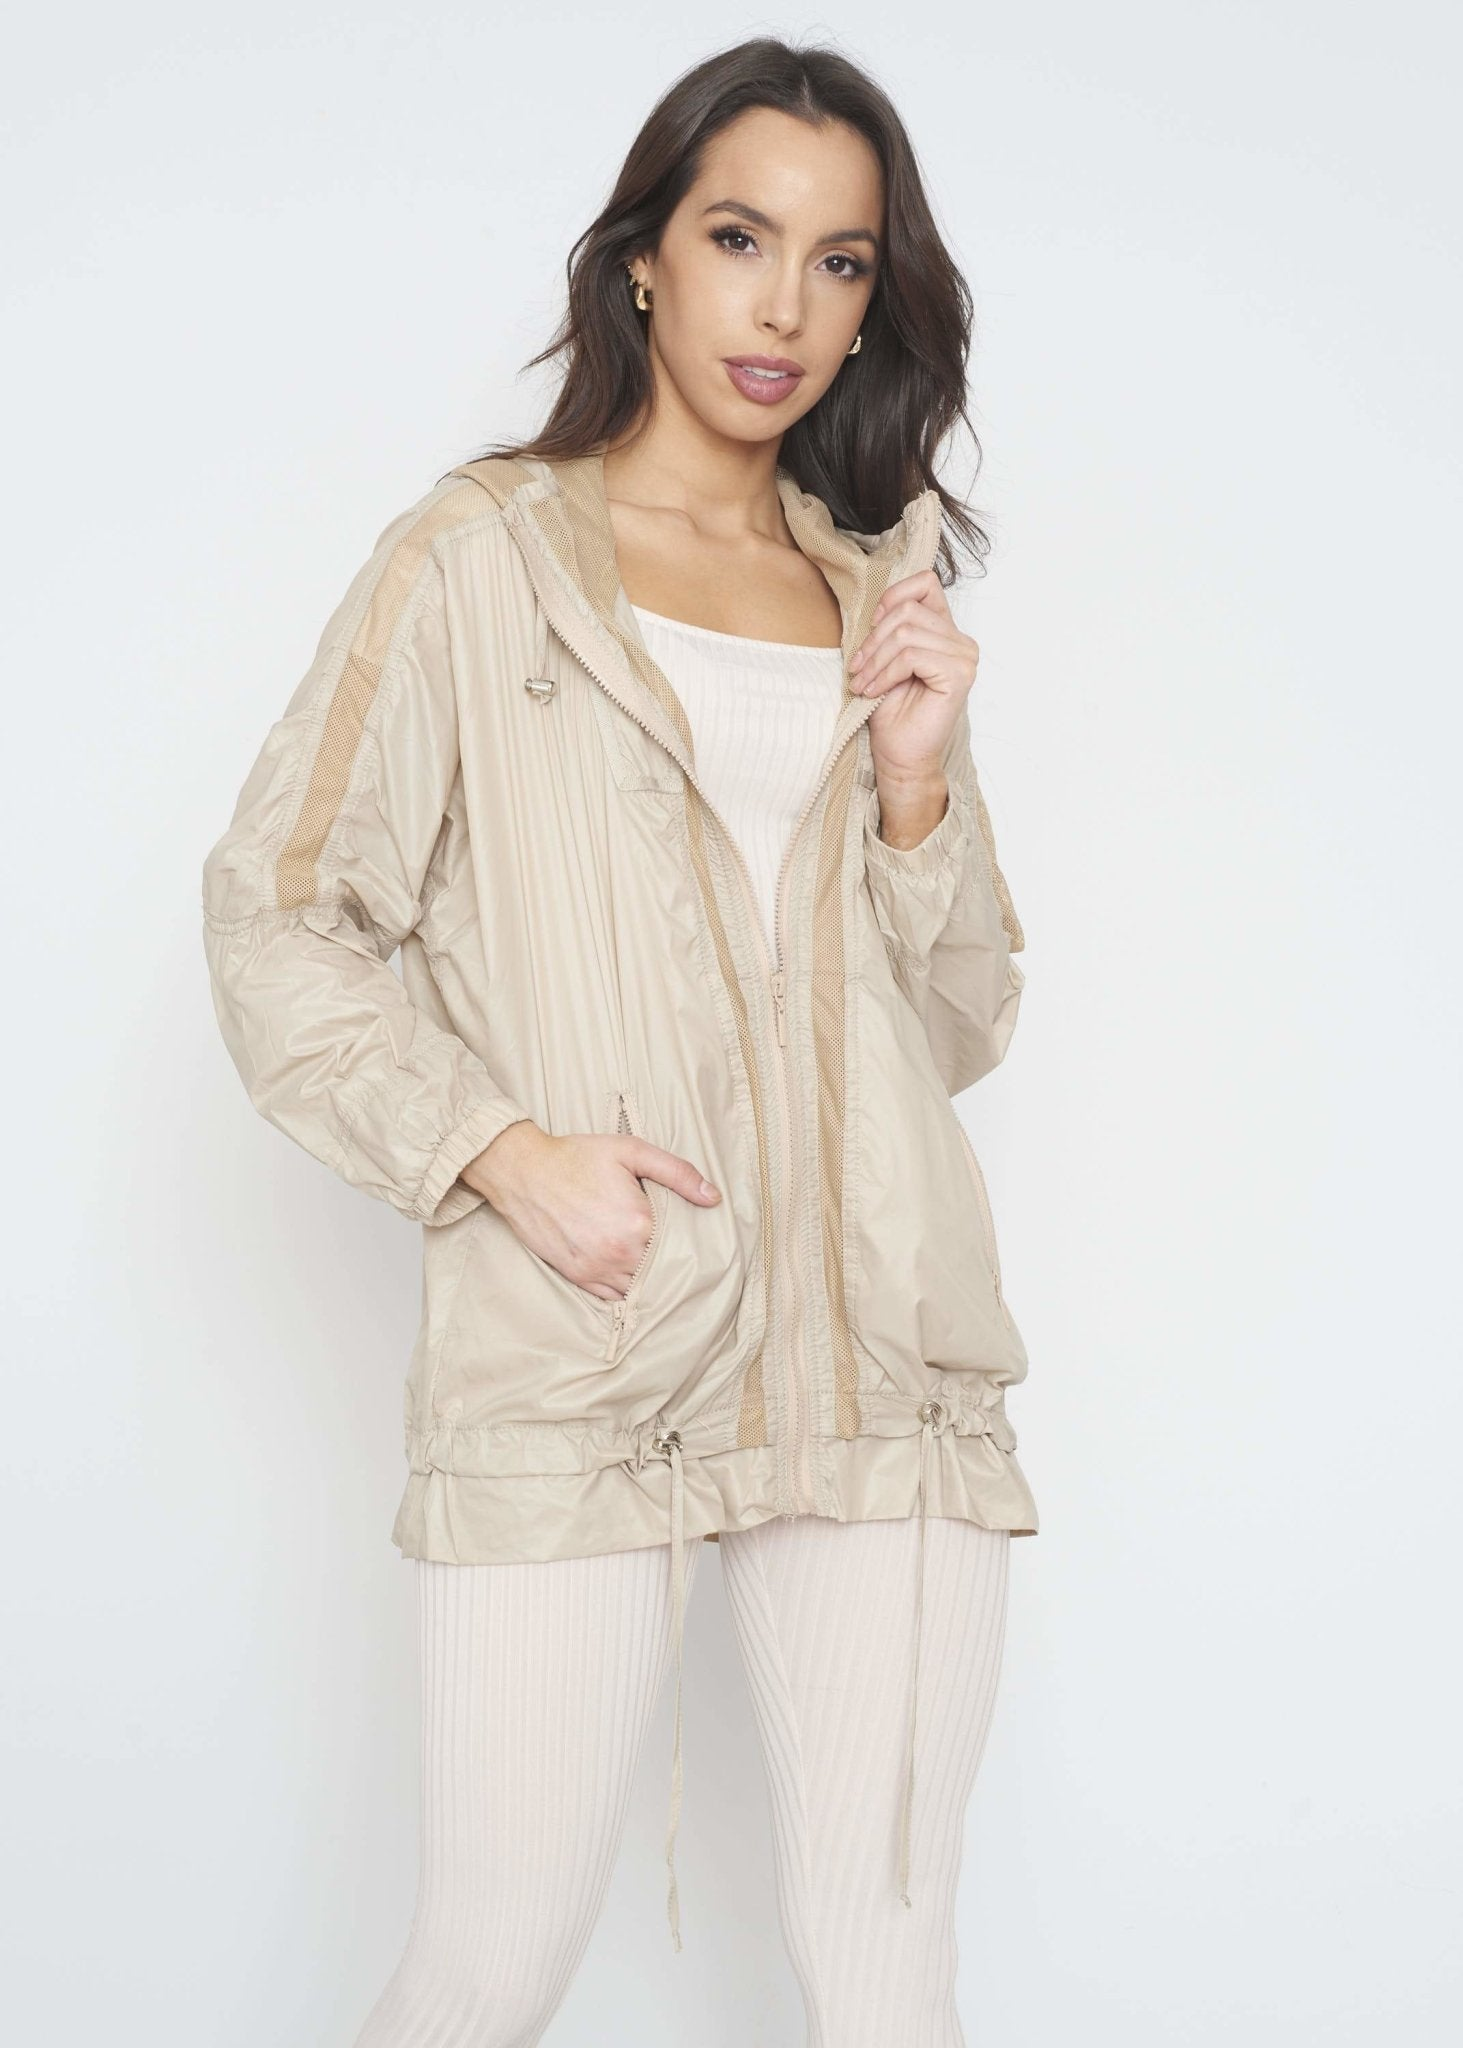 Priya Raincoat In Neutral - The Walk in Wardrobe